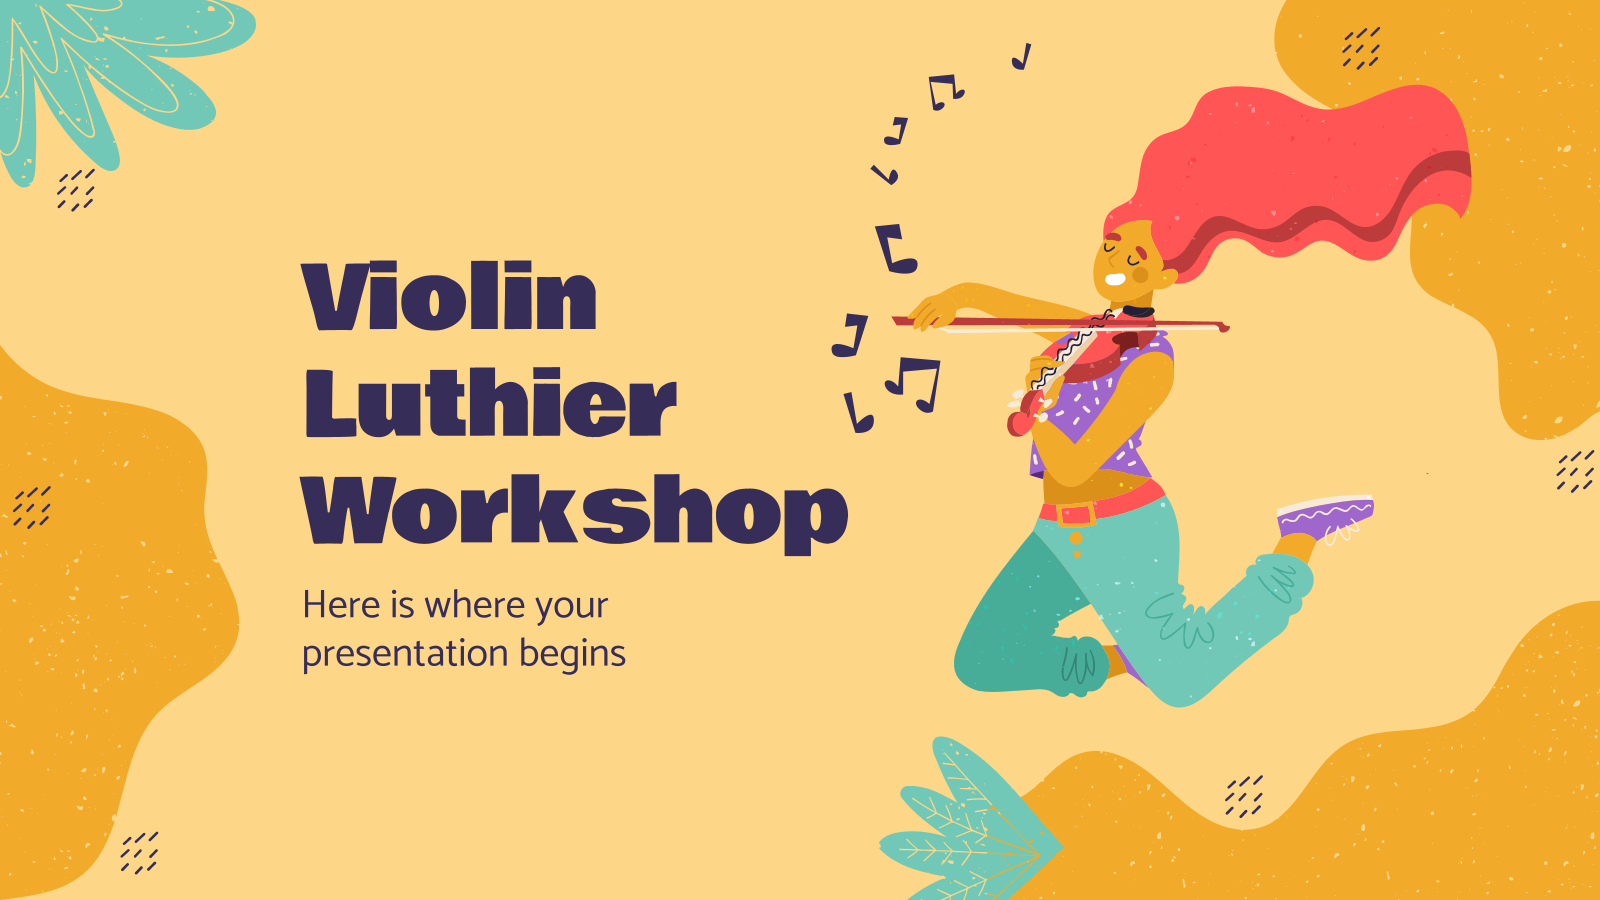 Violin Luthier Workshop presentation template